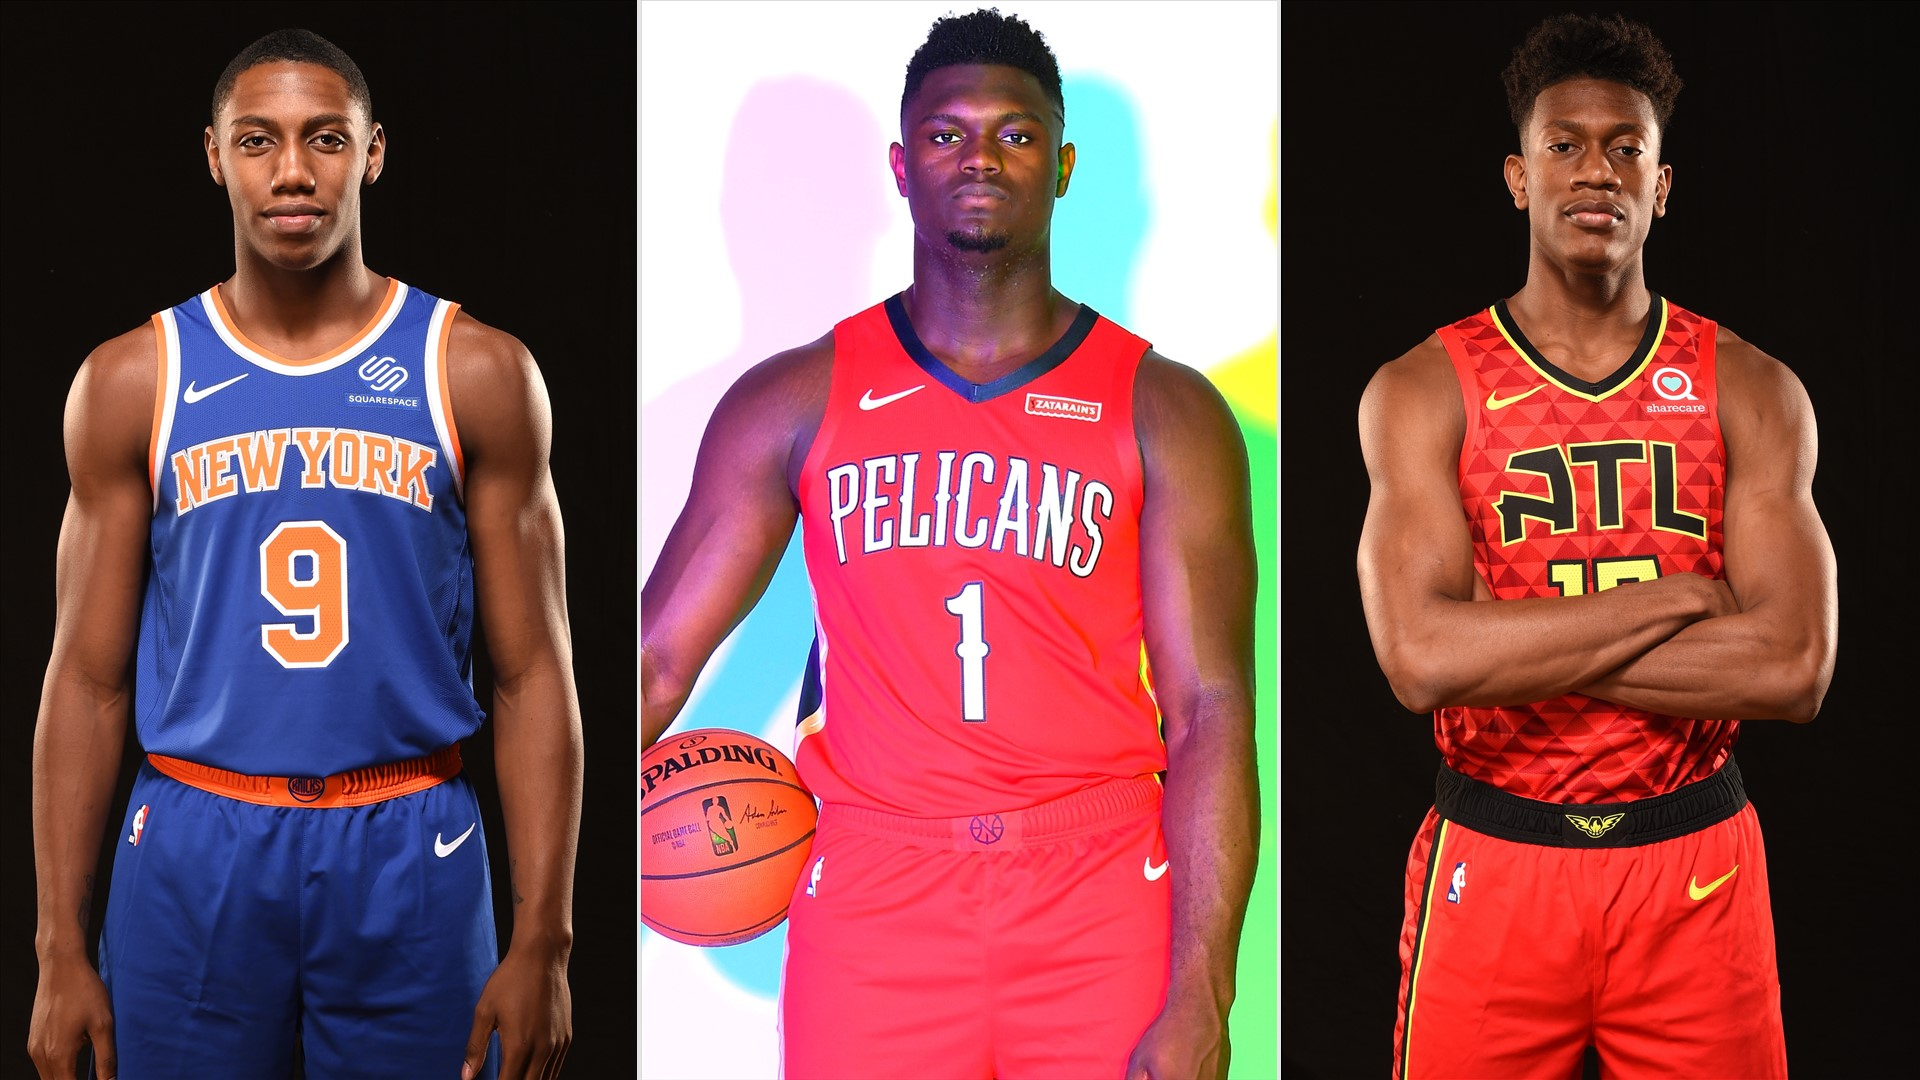 Best sights and sounds from the 2019 NBA Rookie Photo Shoot